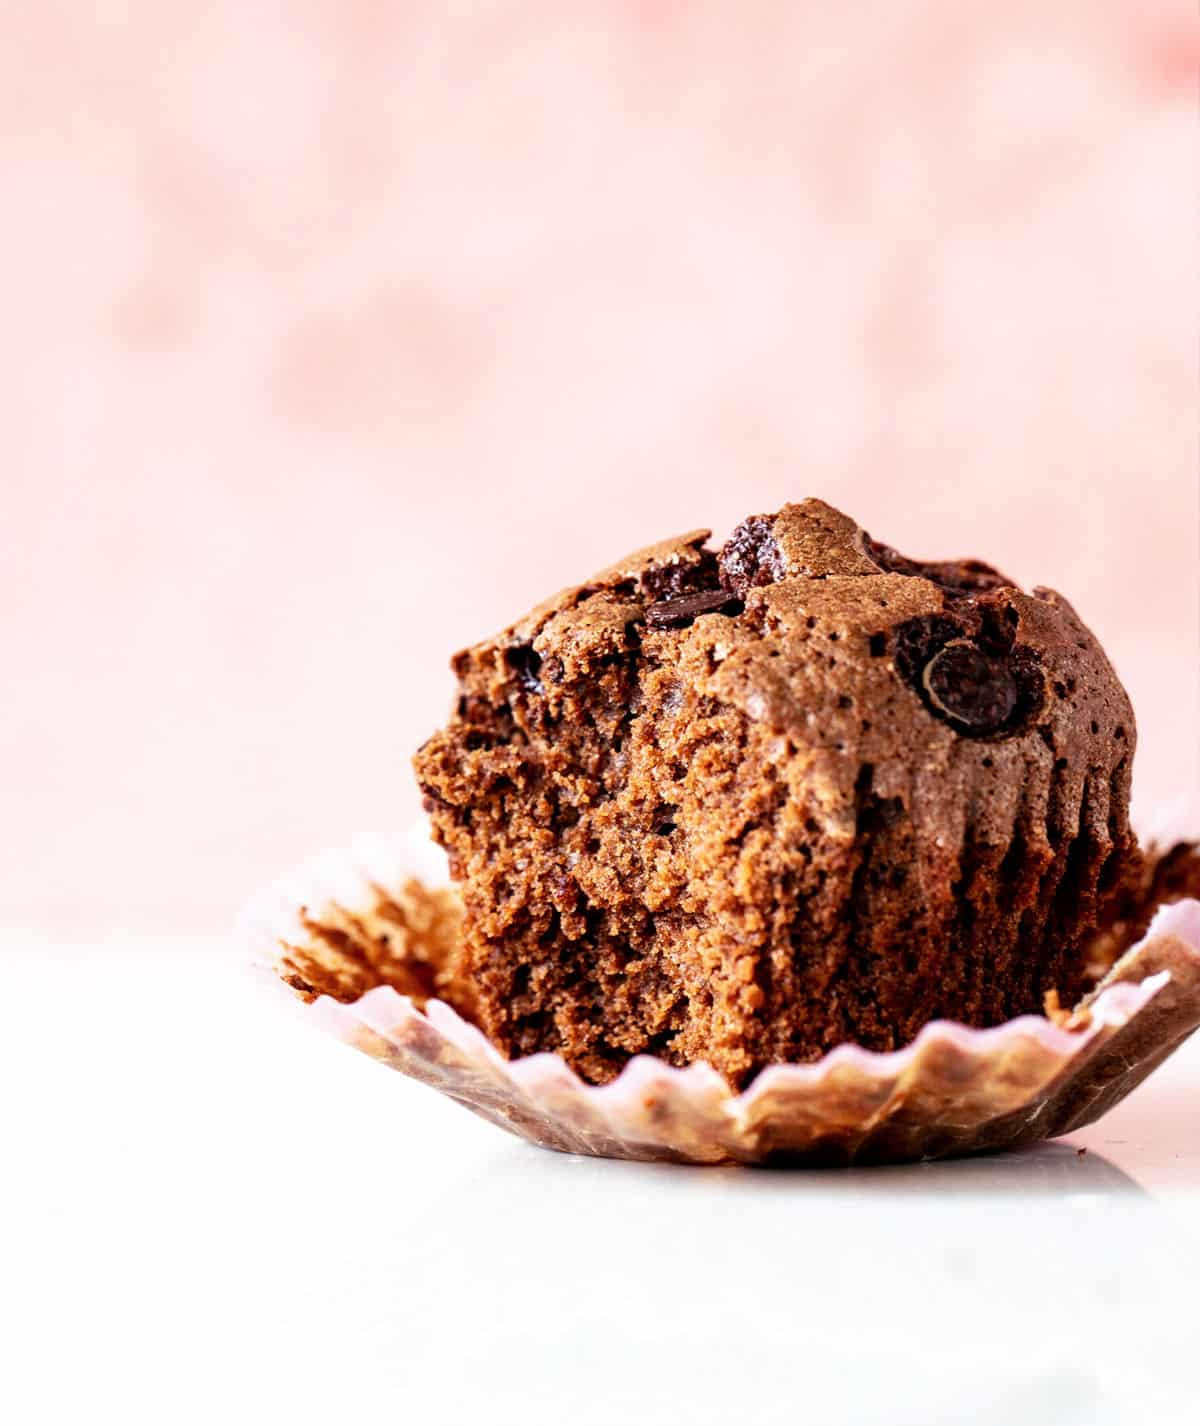 Eaten chocolate muffin in paper liner, white surface and pink background